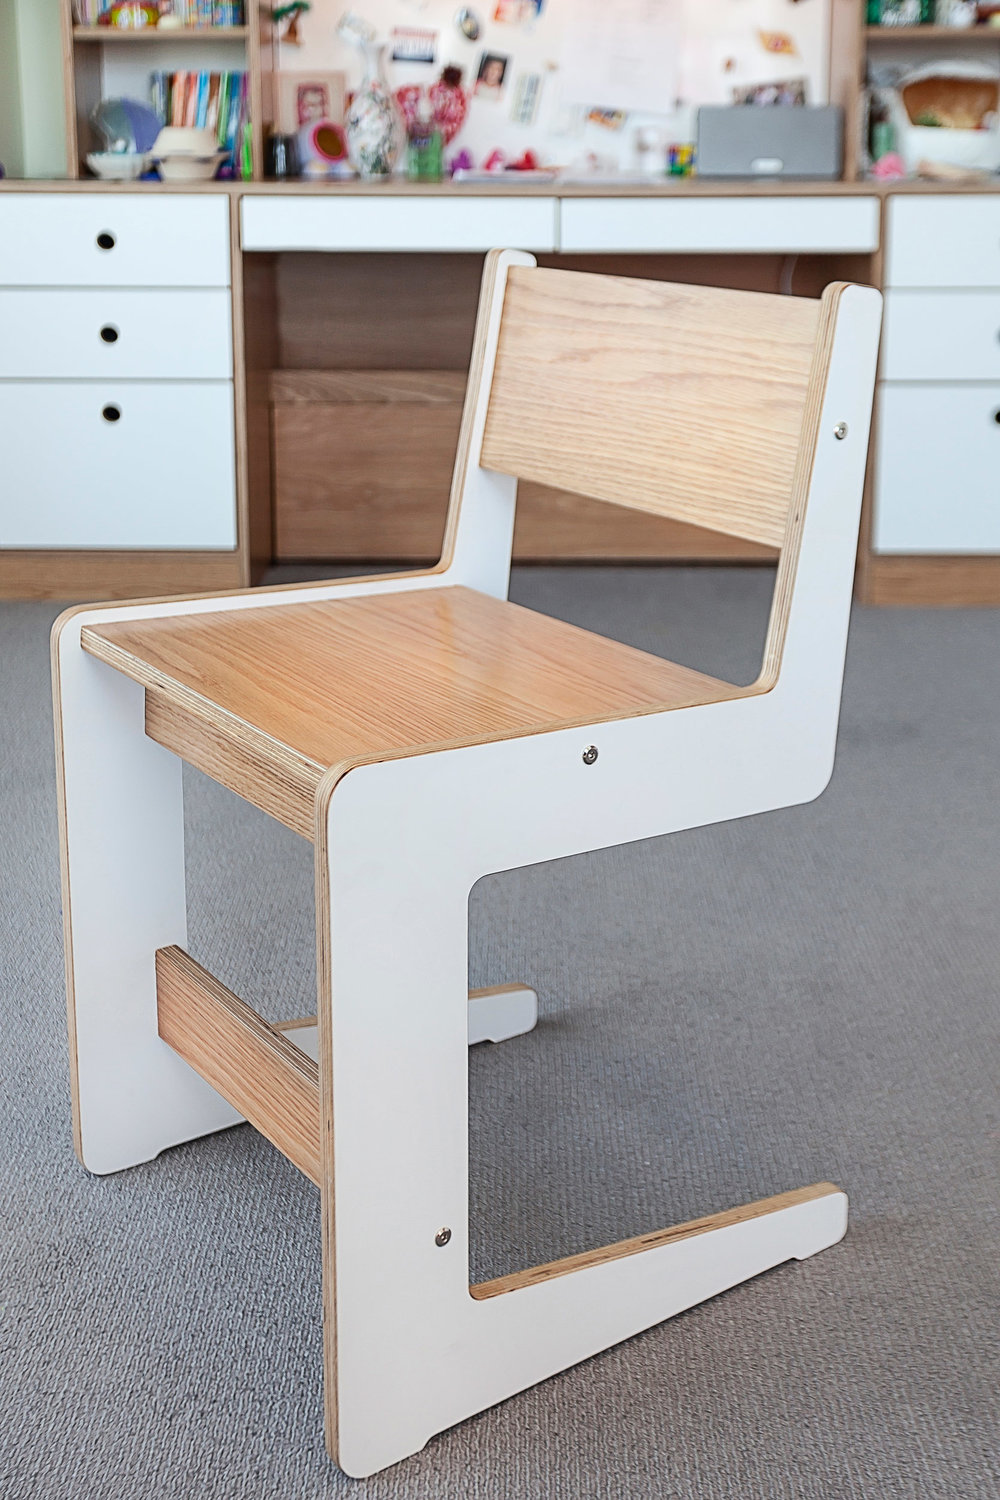 Custom Oak and White Chair